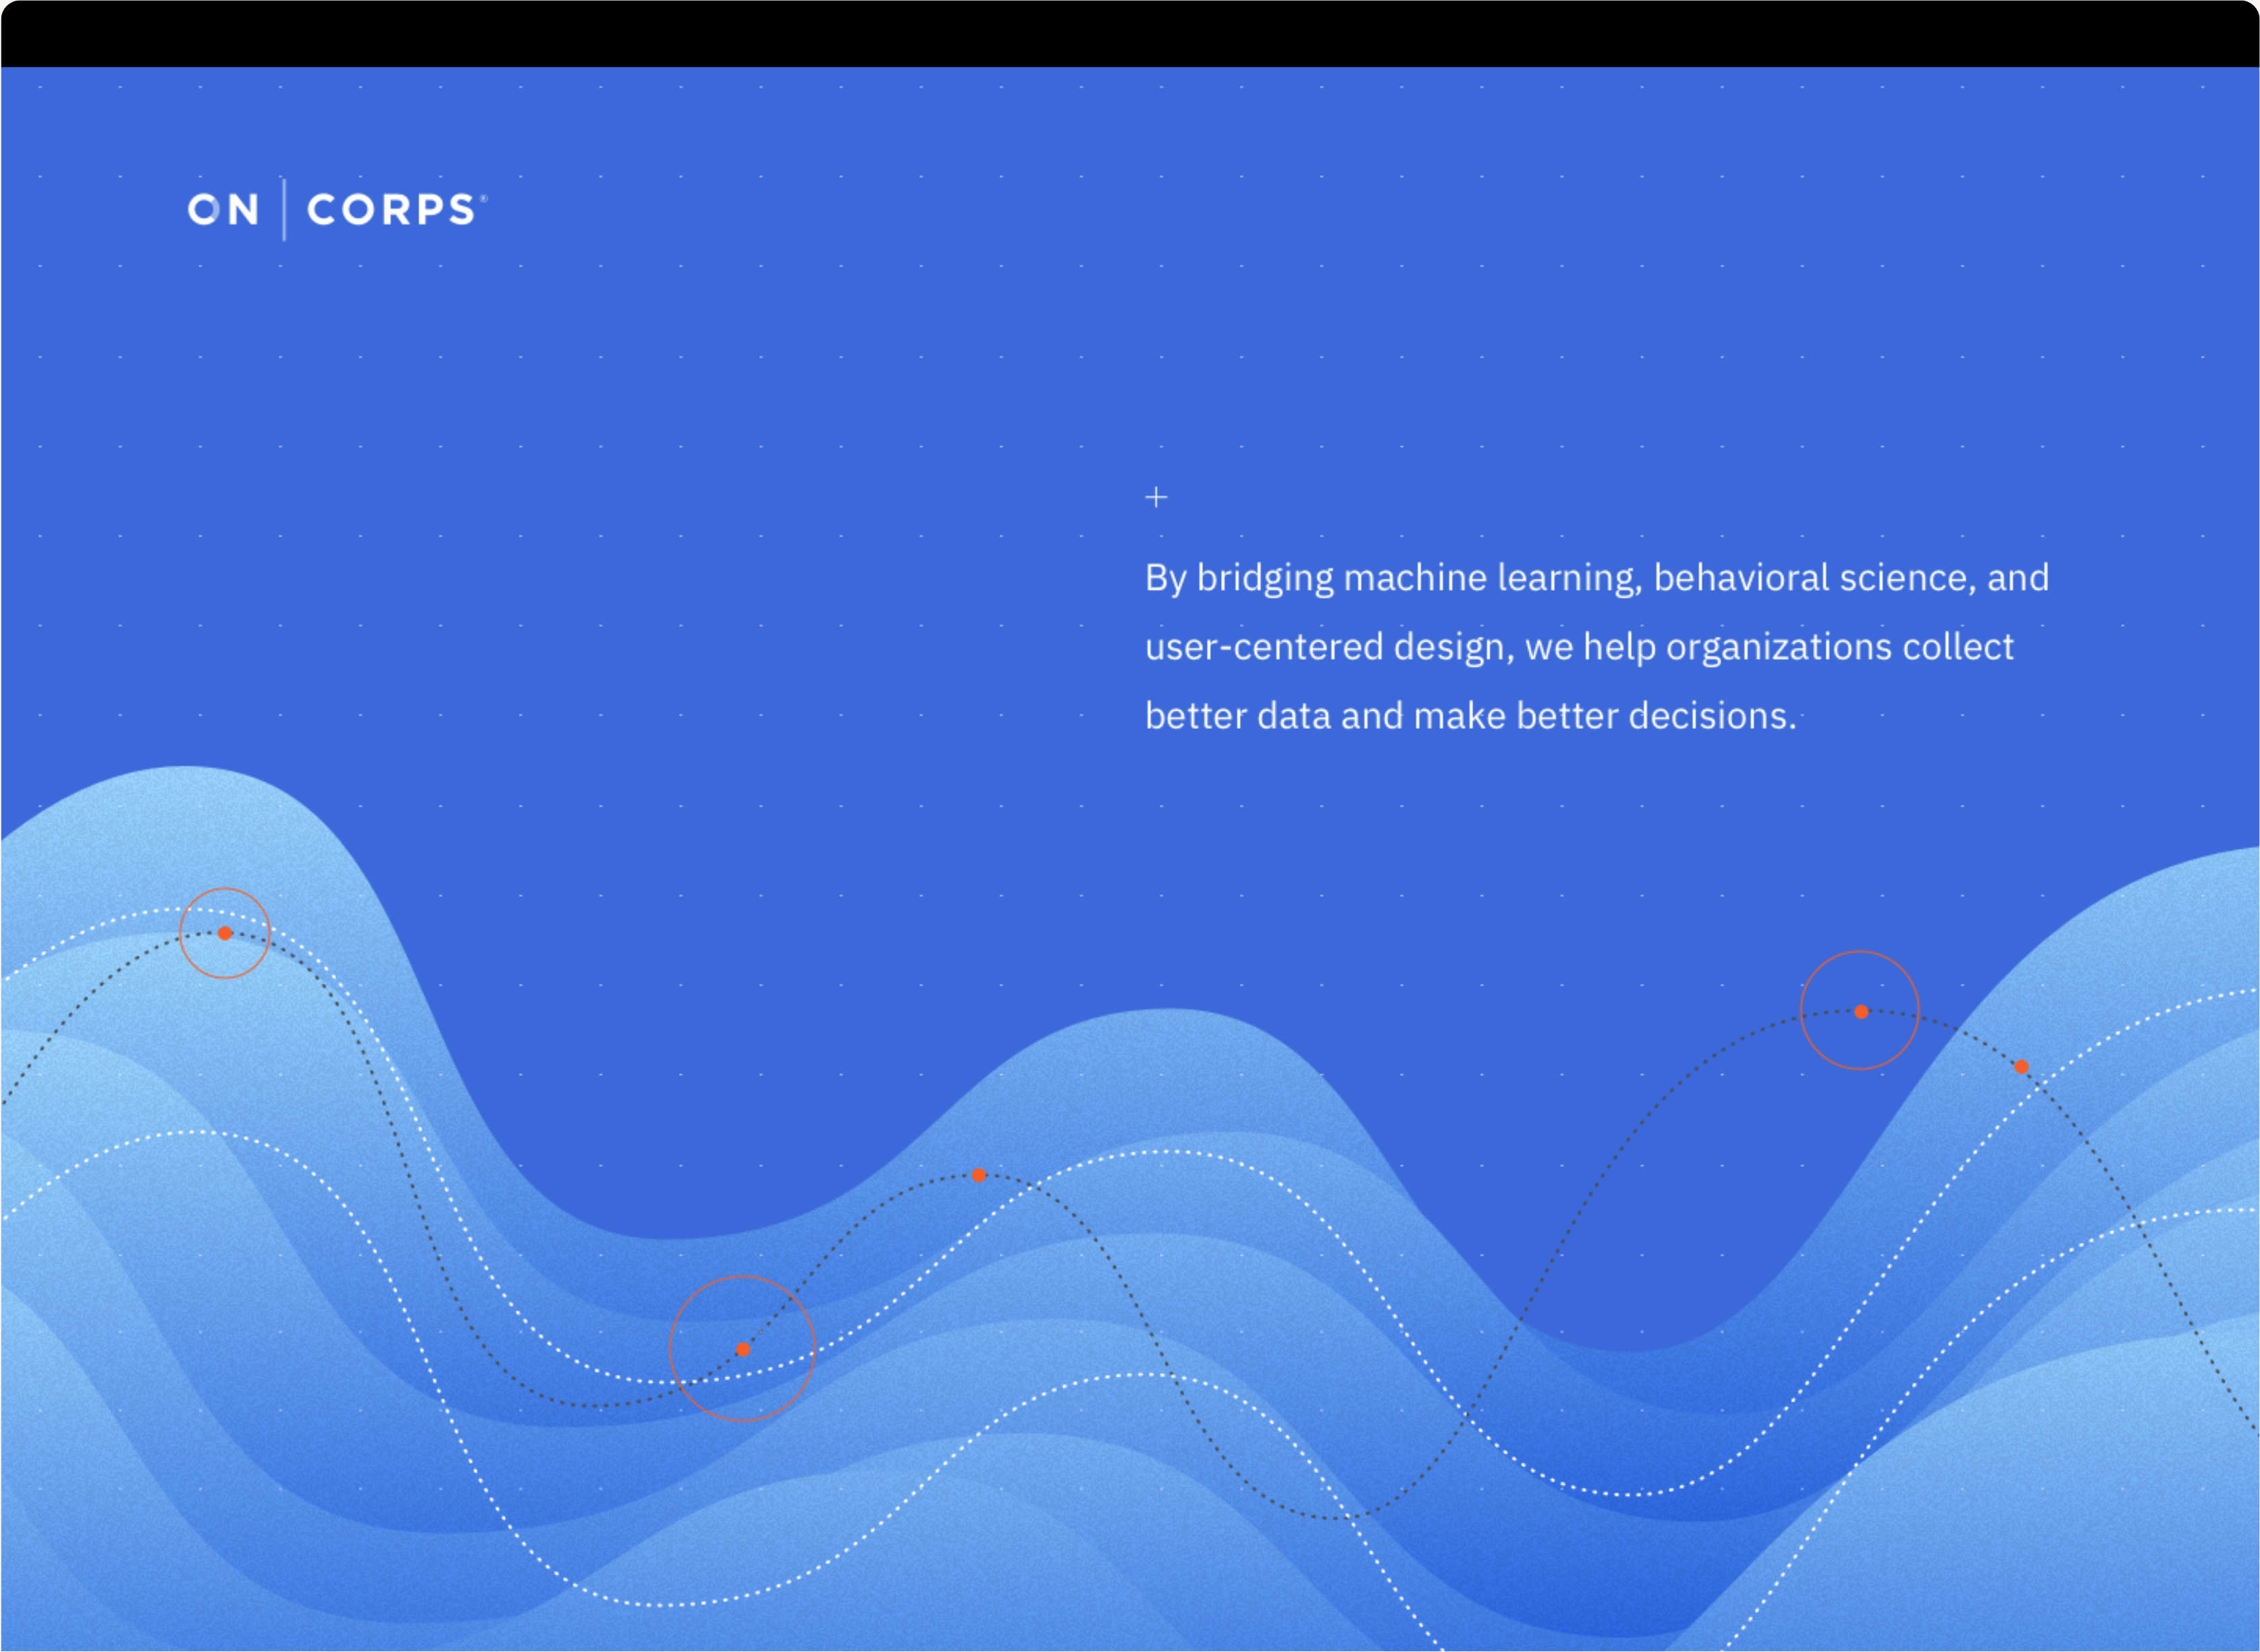 Oncorps .io detail screen of homepage, including wavy chart animation and headline.